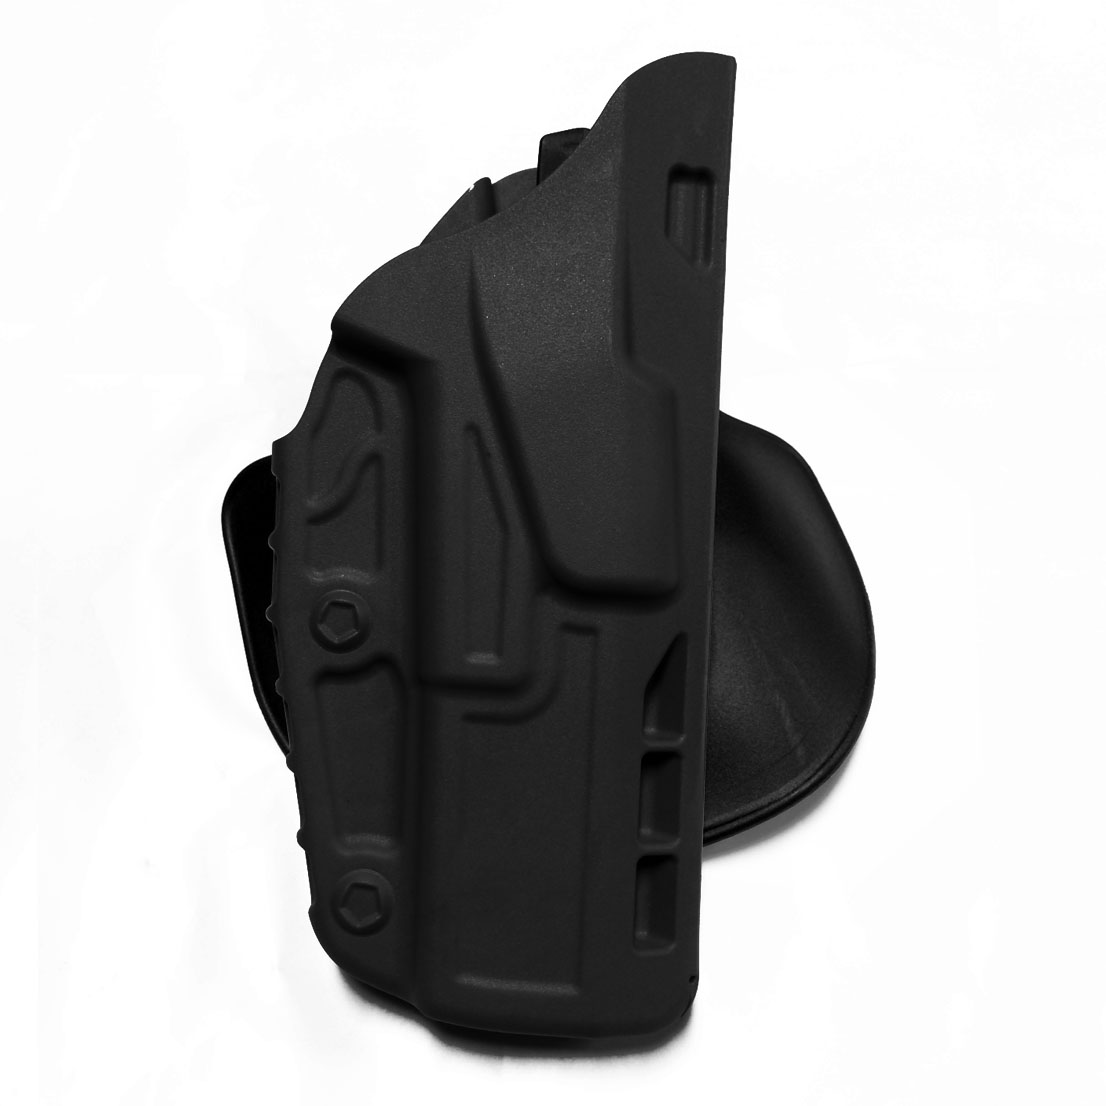 Safariland 7378 7TS ALS Concealment Paddle Holster